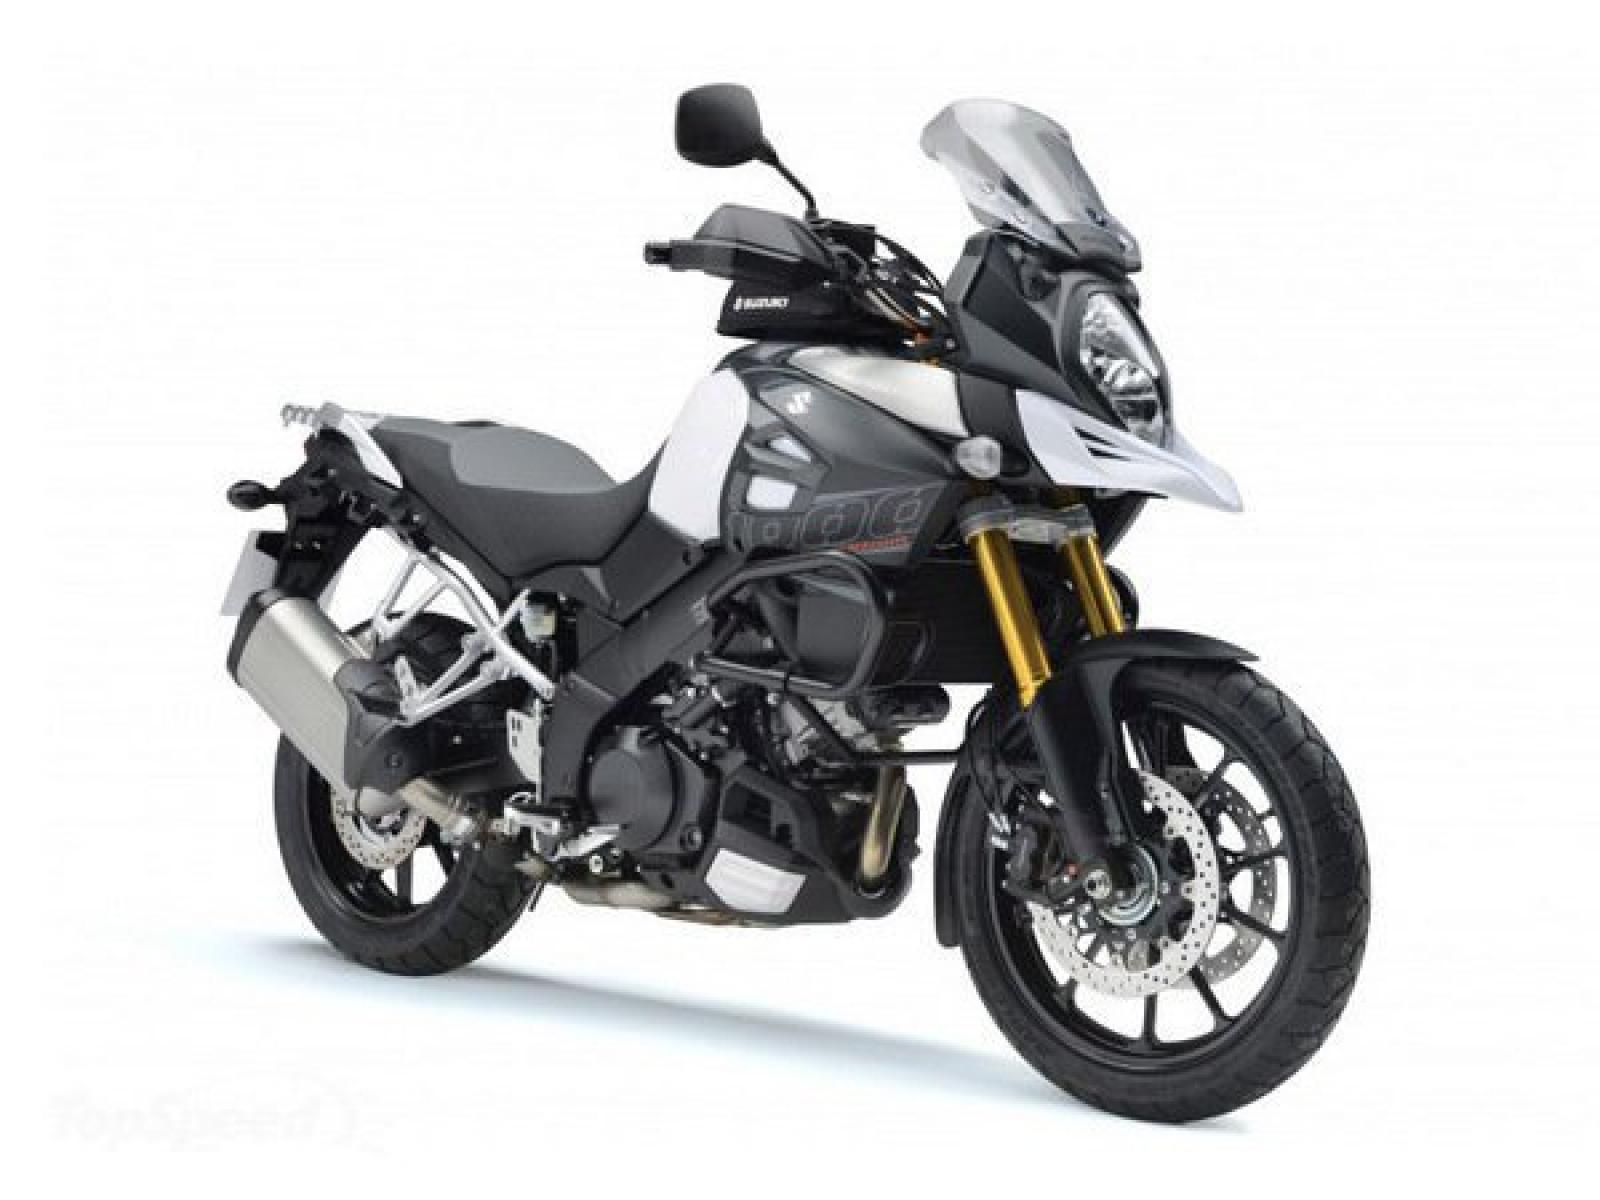 2013 suzuki v strom 1000 adventure moto zombdrive com. Black Bedroom Furniture Sets. Home Design Ideas